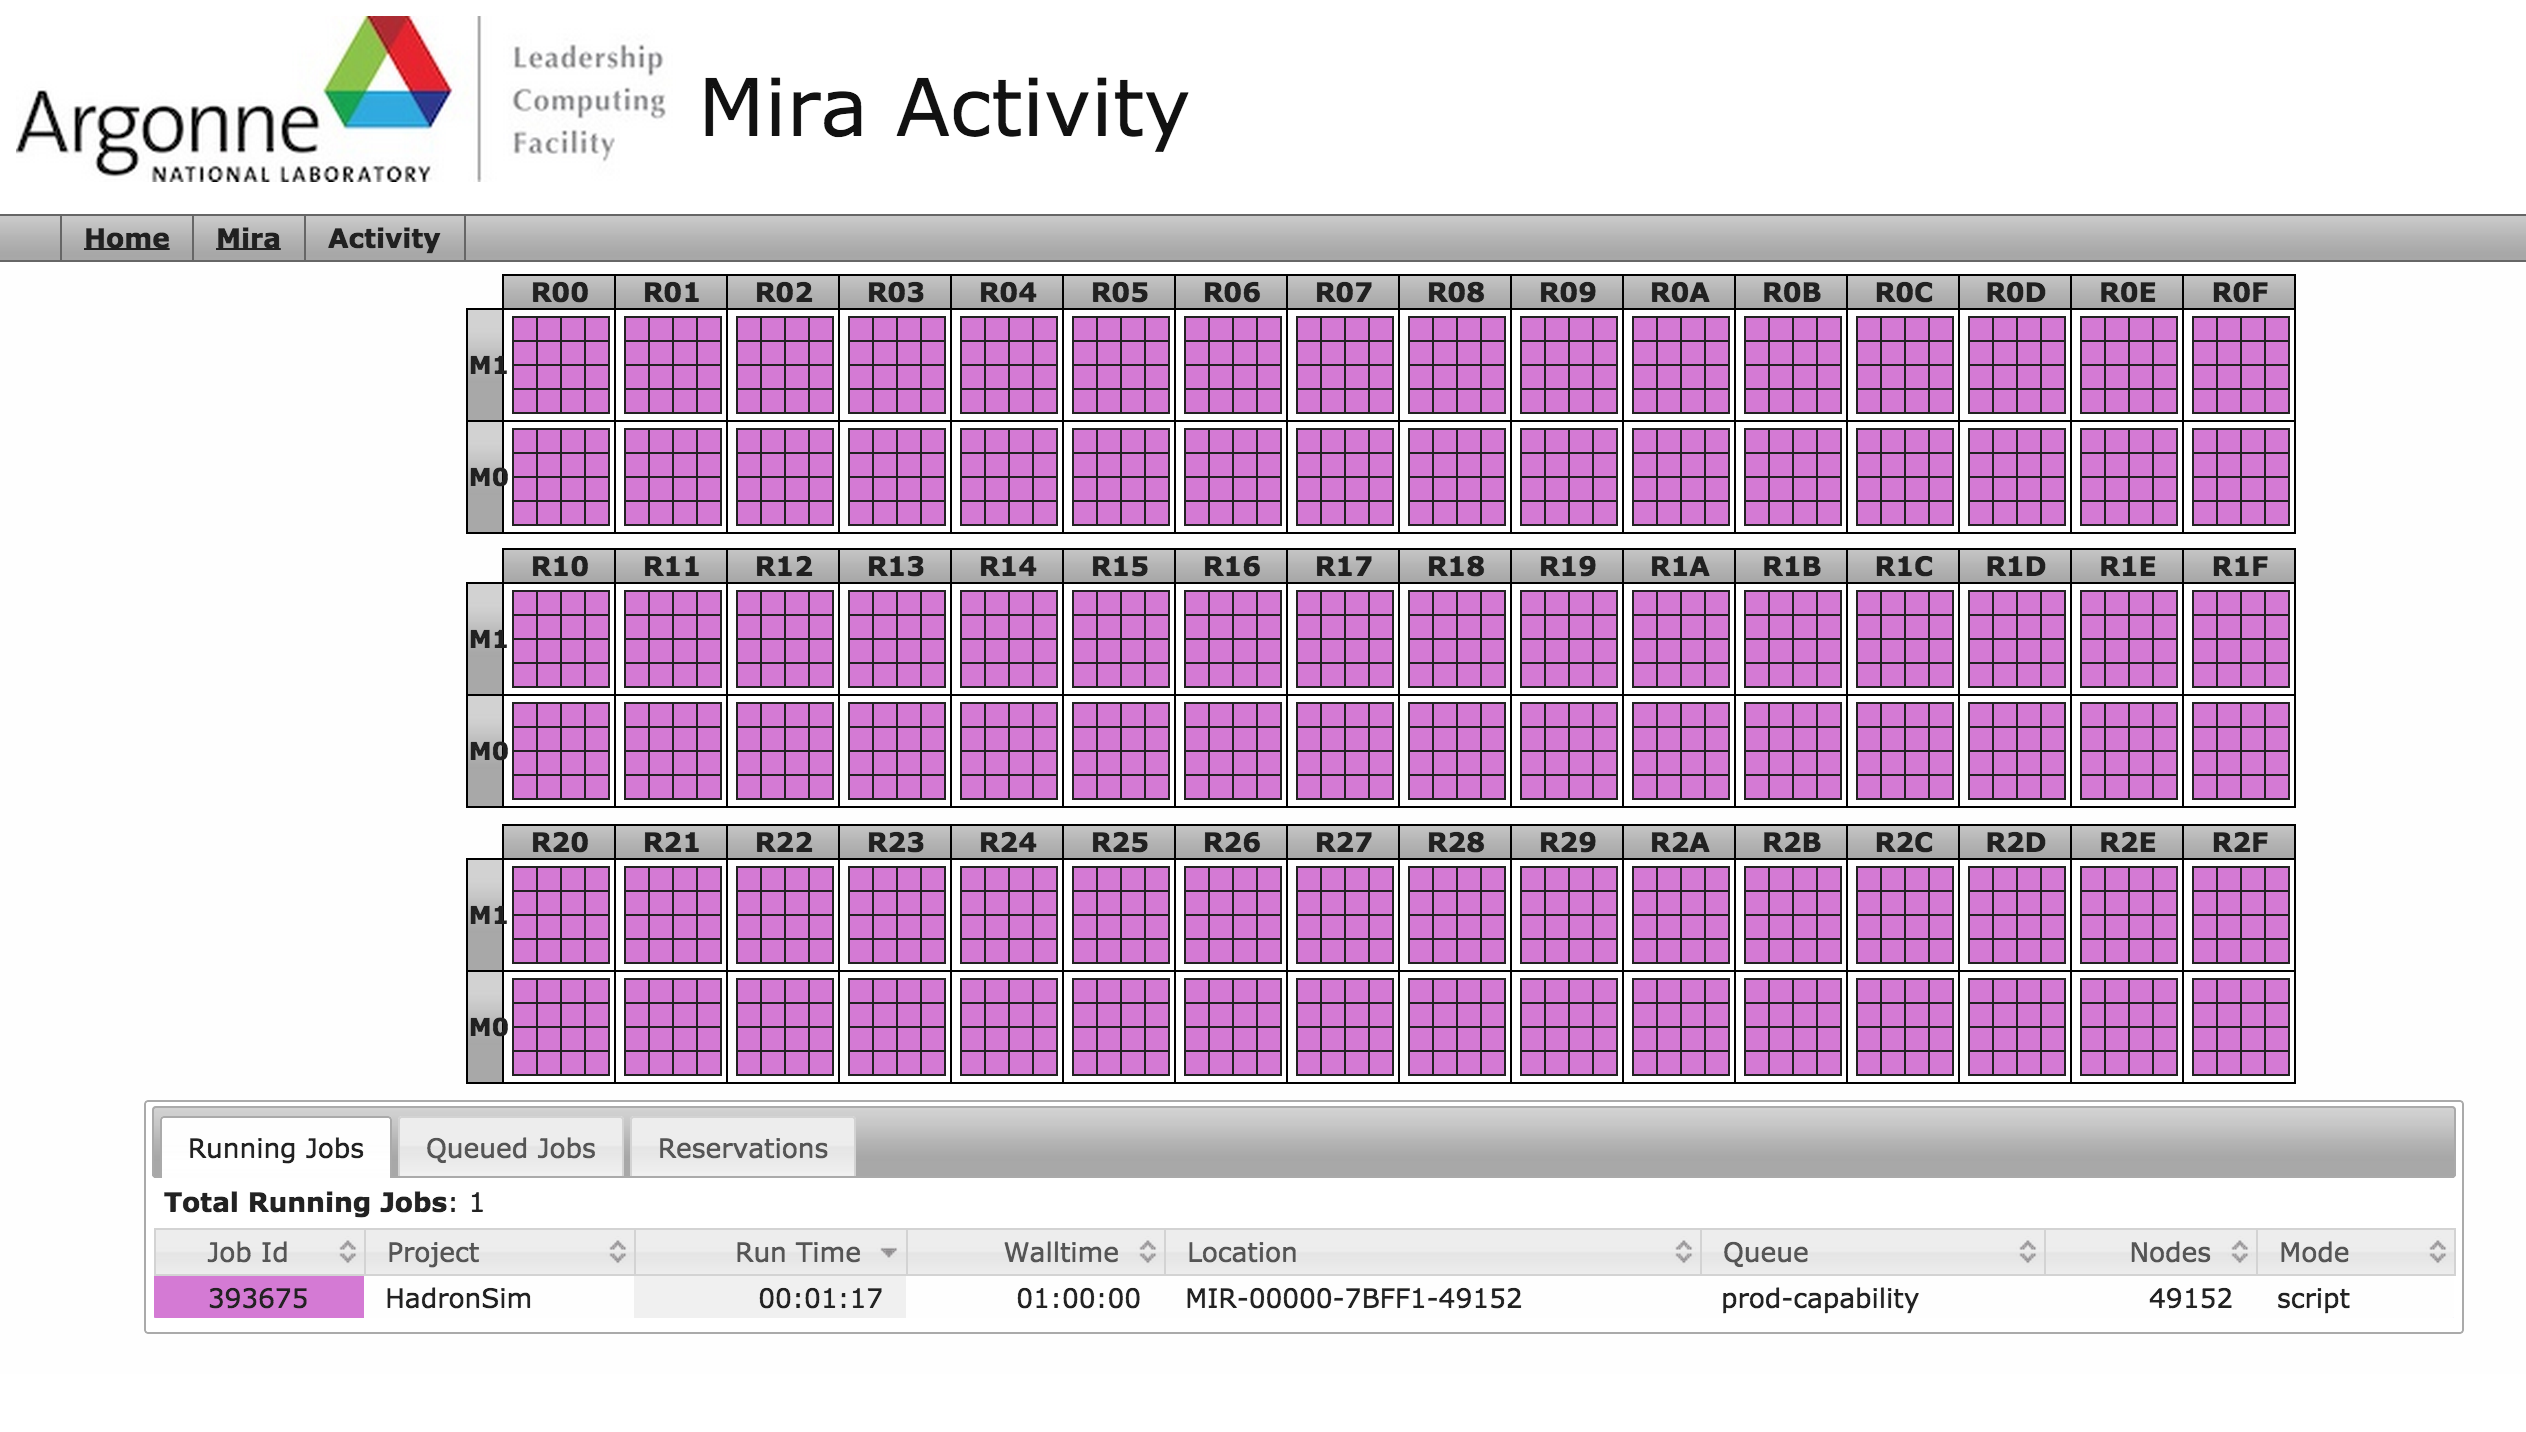 1.5M threads of Alpgen running on Mira for 10 minutes to produce 85M W+5jet events.